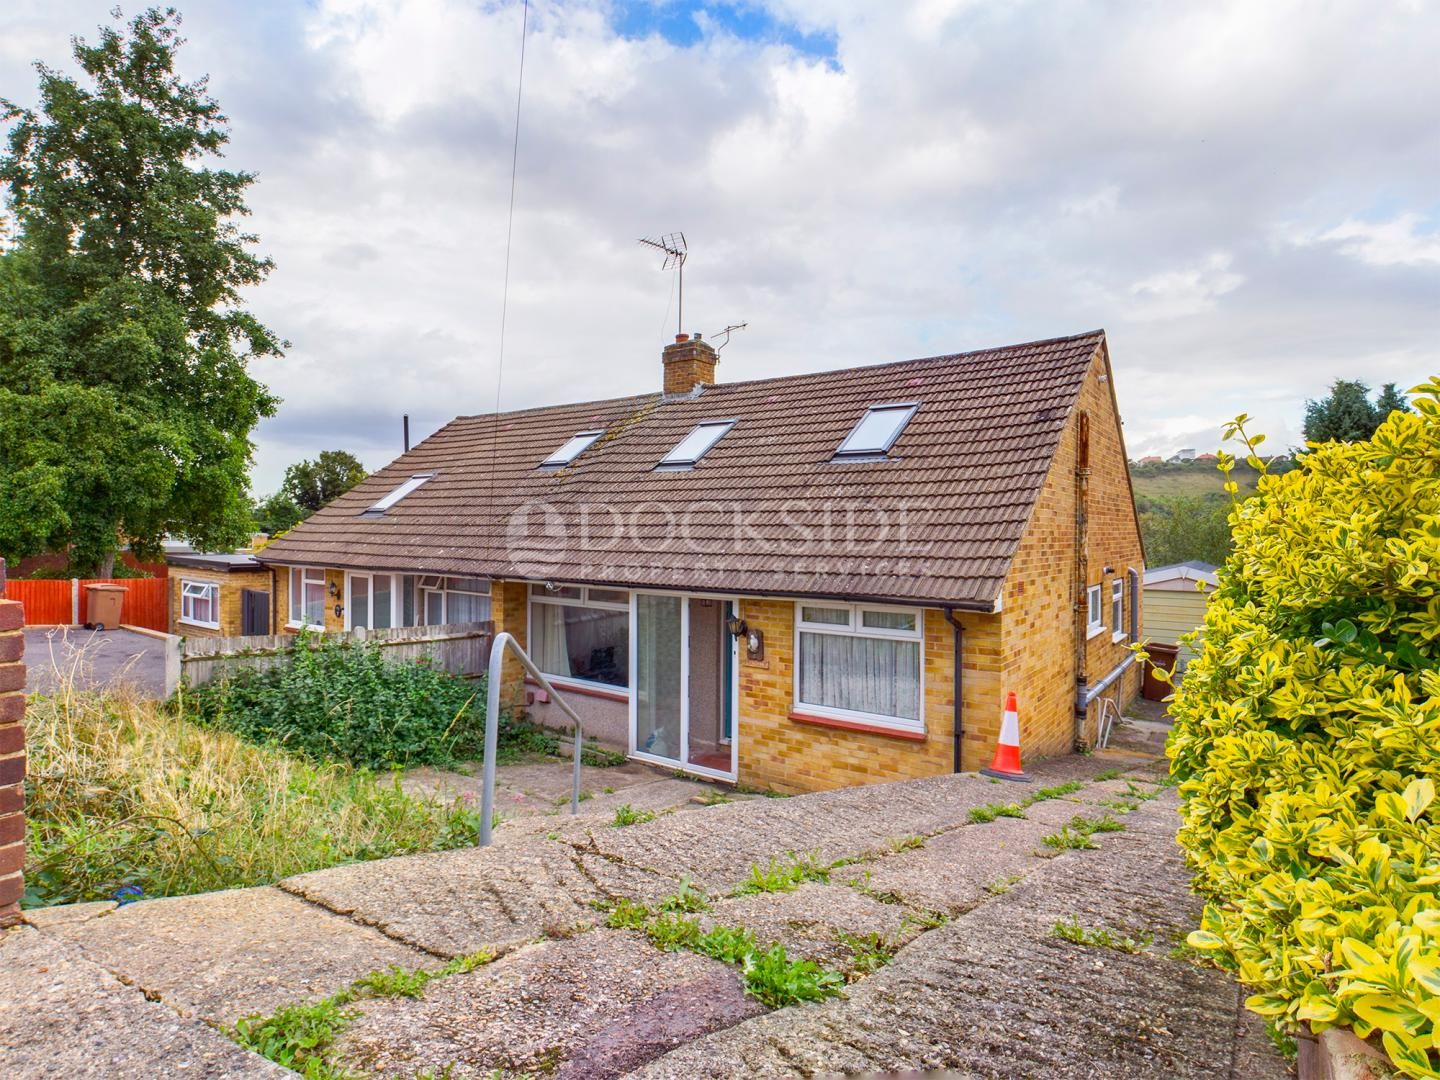 2 bed bungalow for sale in Carlton Cresent, ME5